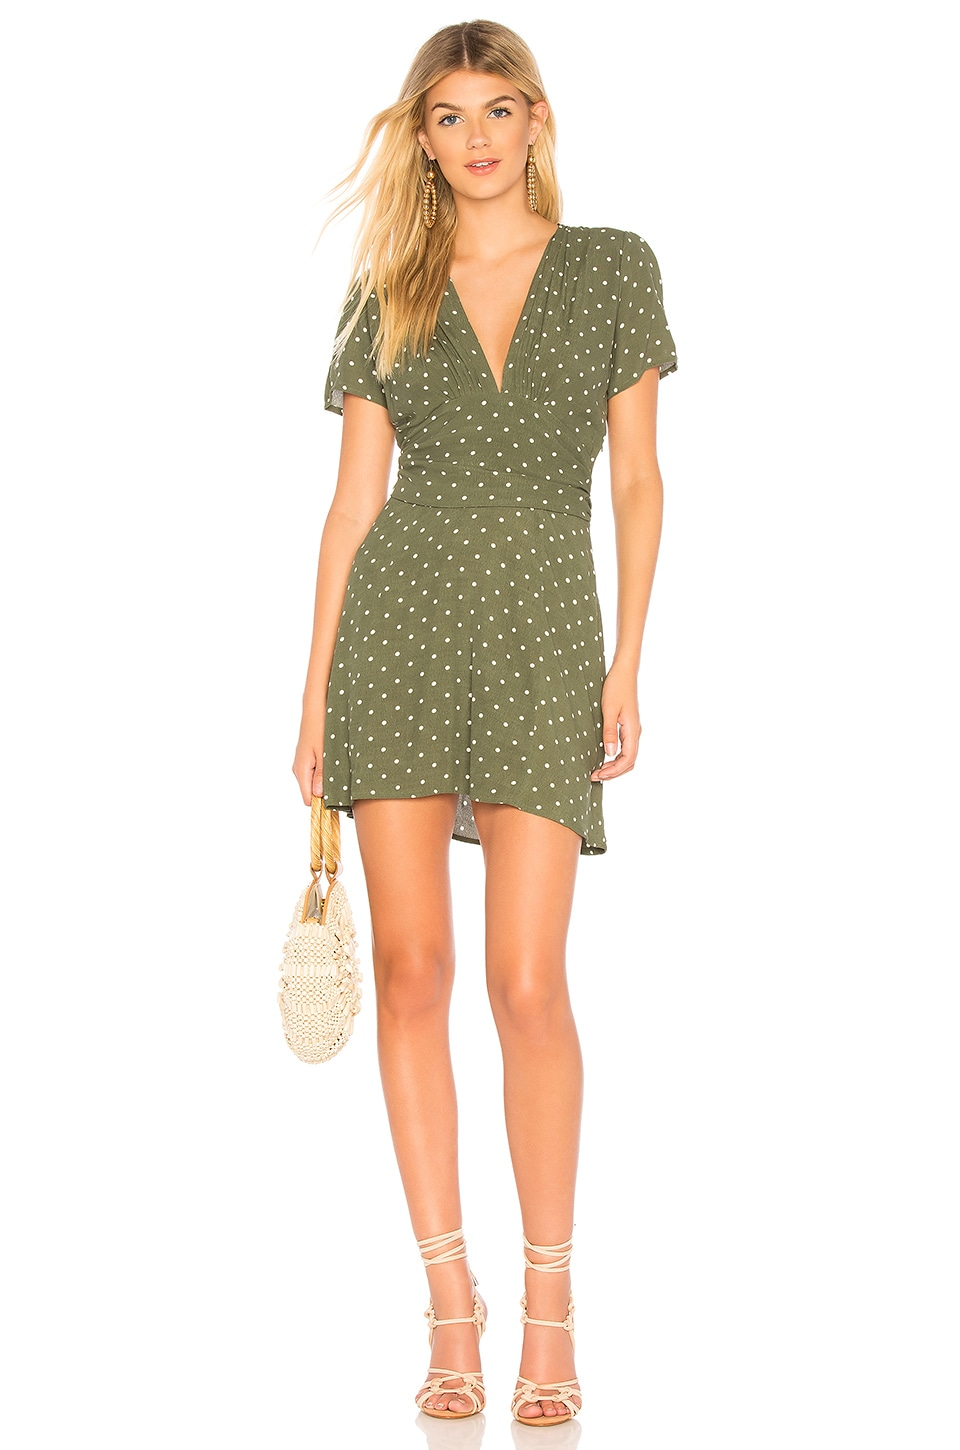 AUGUSTE Polly Goldie Mini Dress in Green